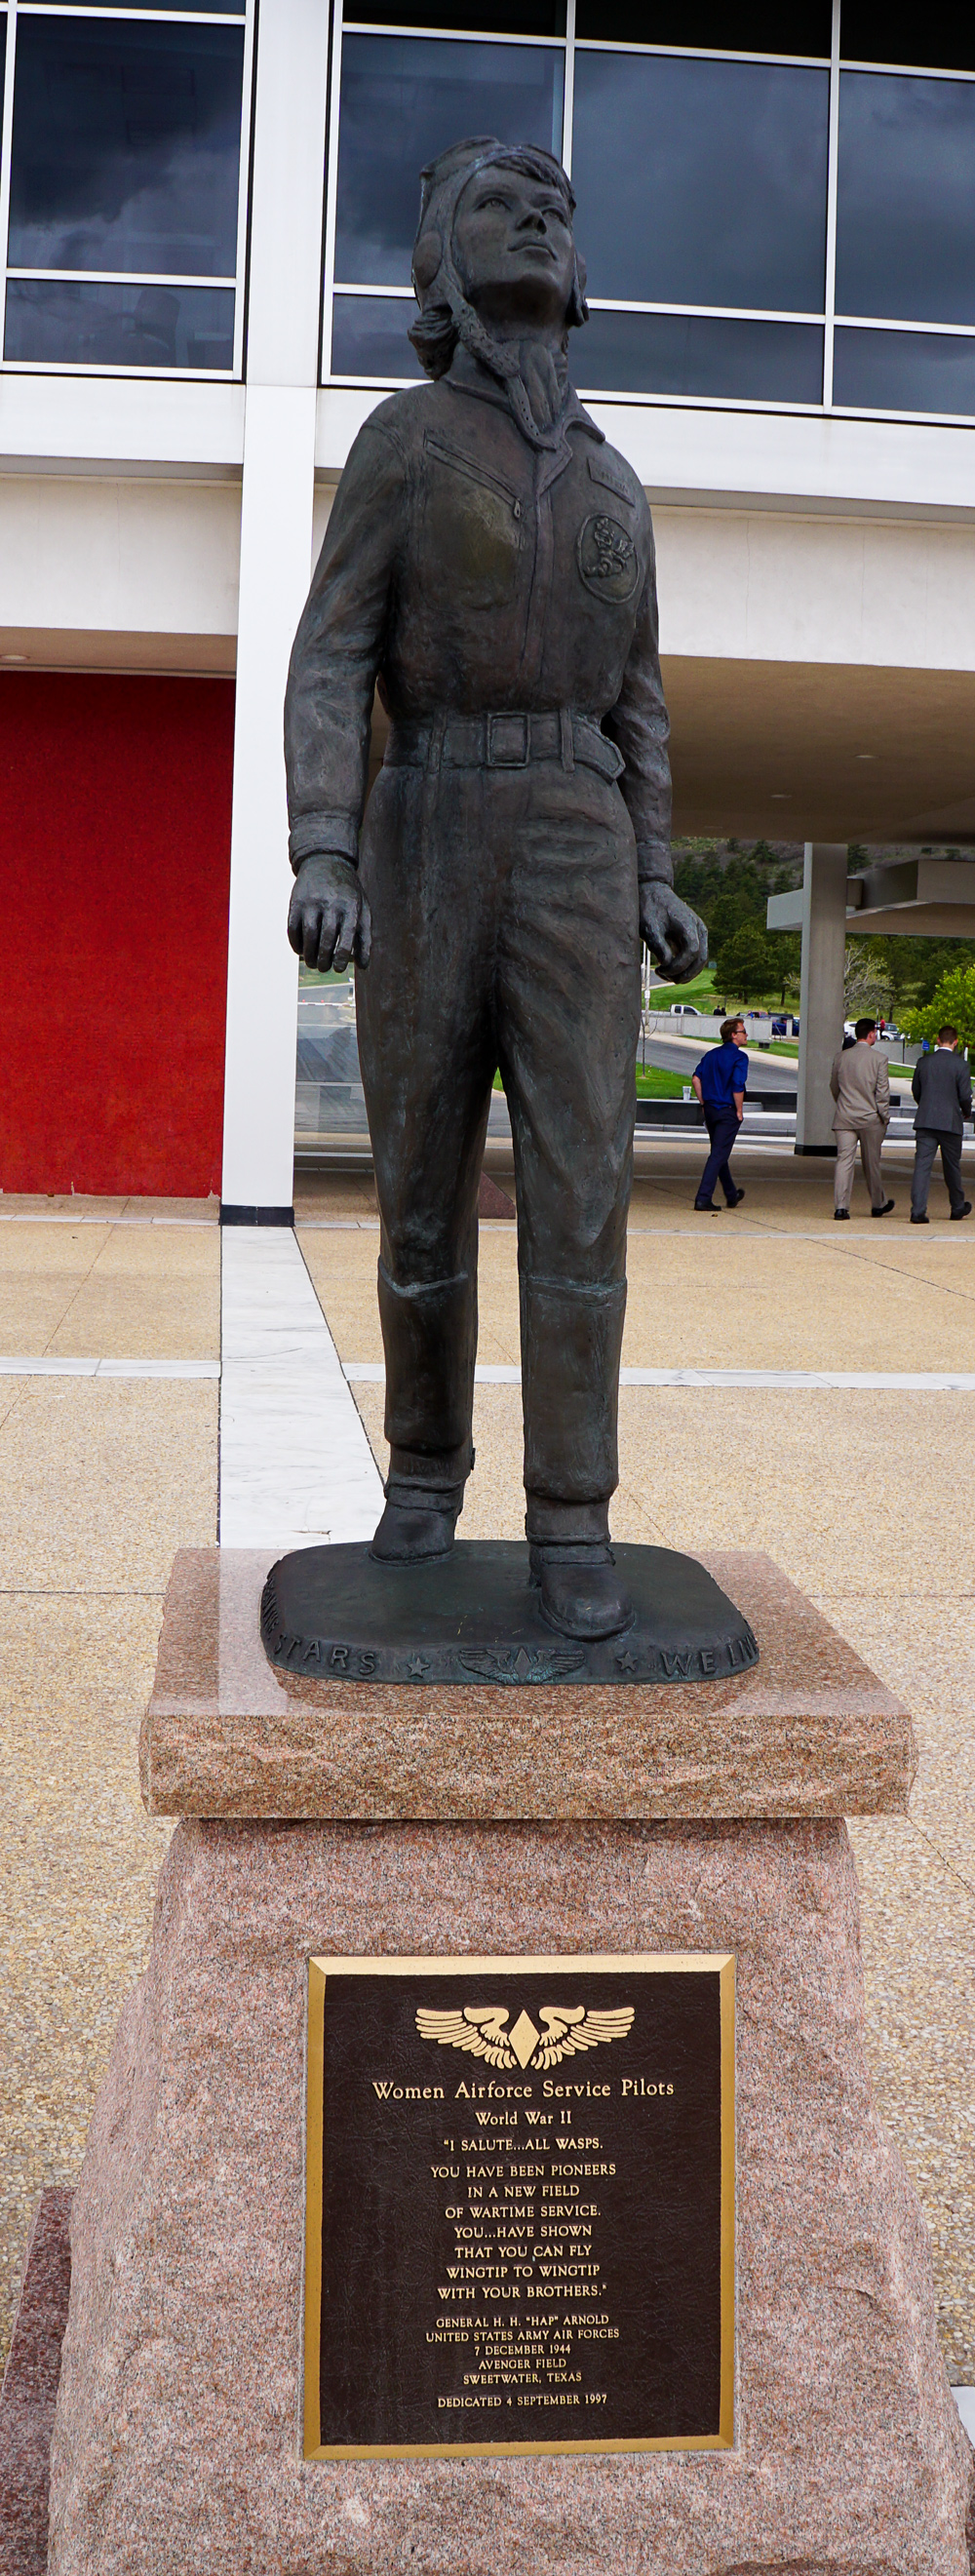 Women Airforce Service Pilot Statue